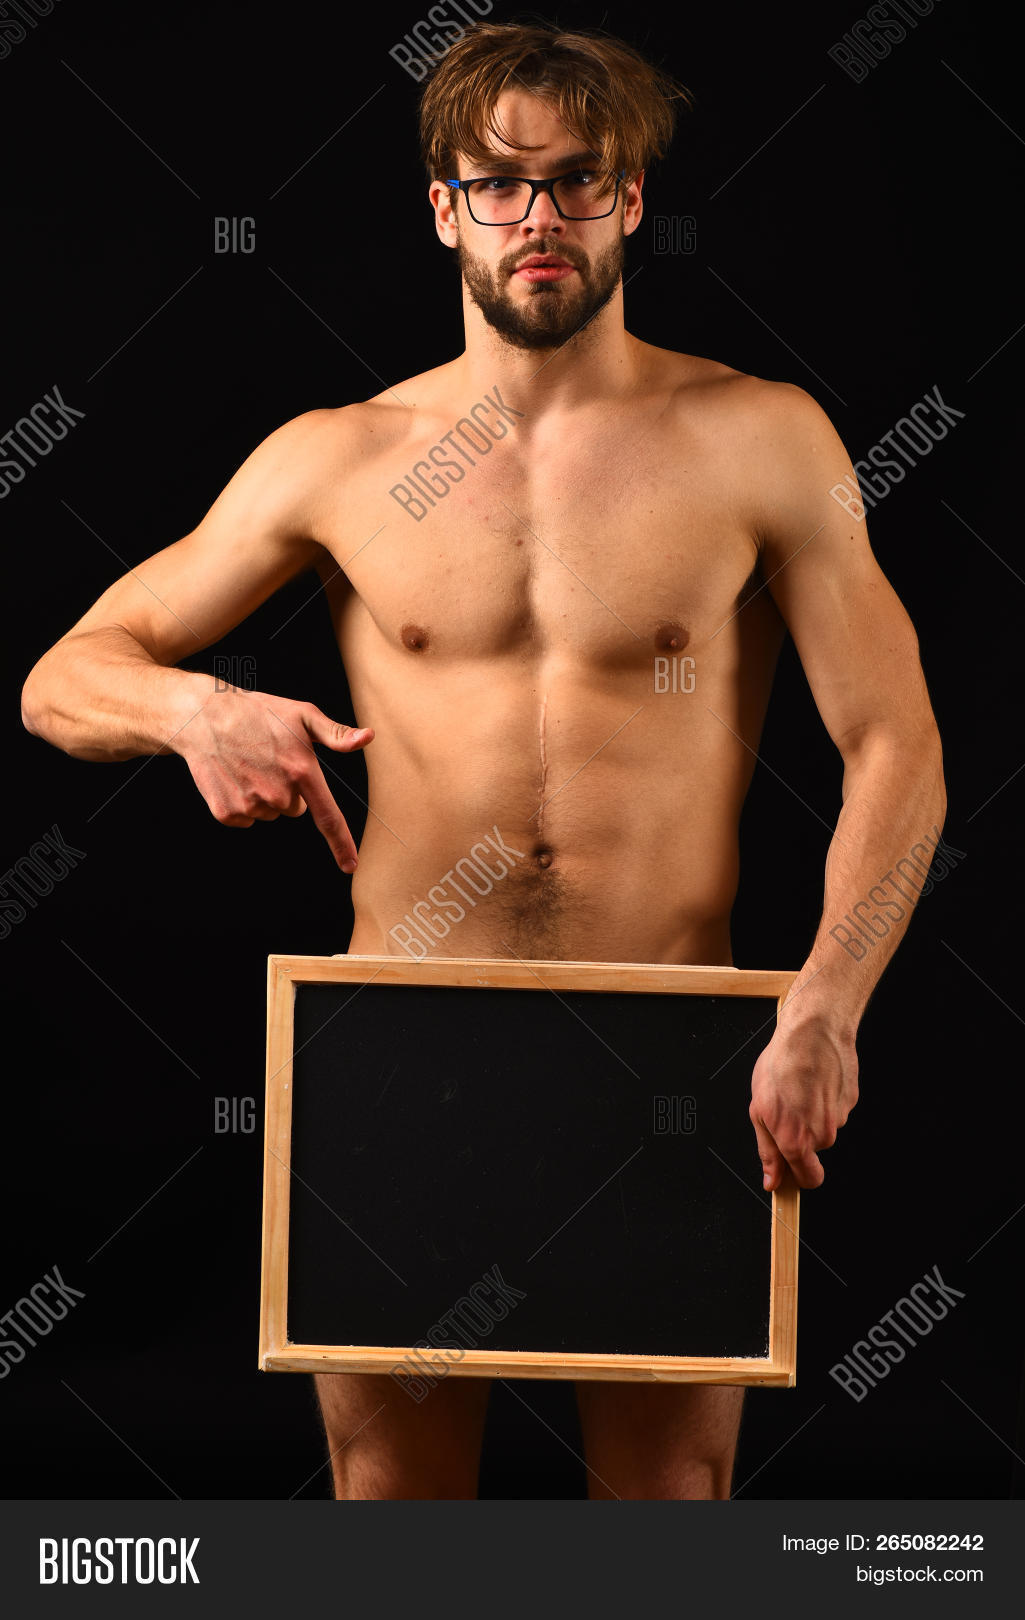 ads,adult,advertisement,athlete,athletic,attractive,background,beard,bearded,black,blackboard,blank,body,chalkboard,chest,copy,eyeglasses,fitness,front,guy,hair,handsome,health,healthy,hold,lover,macho,man,masculine,muscle,muscular,naked,nerd,nude,pack,pointing,sexi,sexy,six,smart,space,strong,torso,tousled,unshaven,wear,young